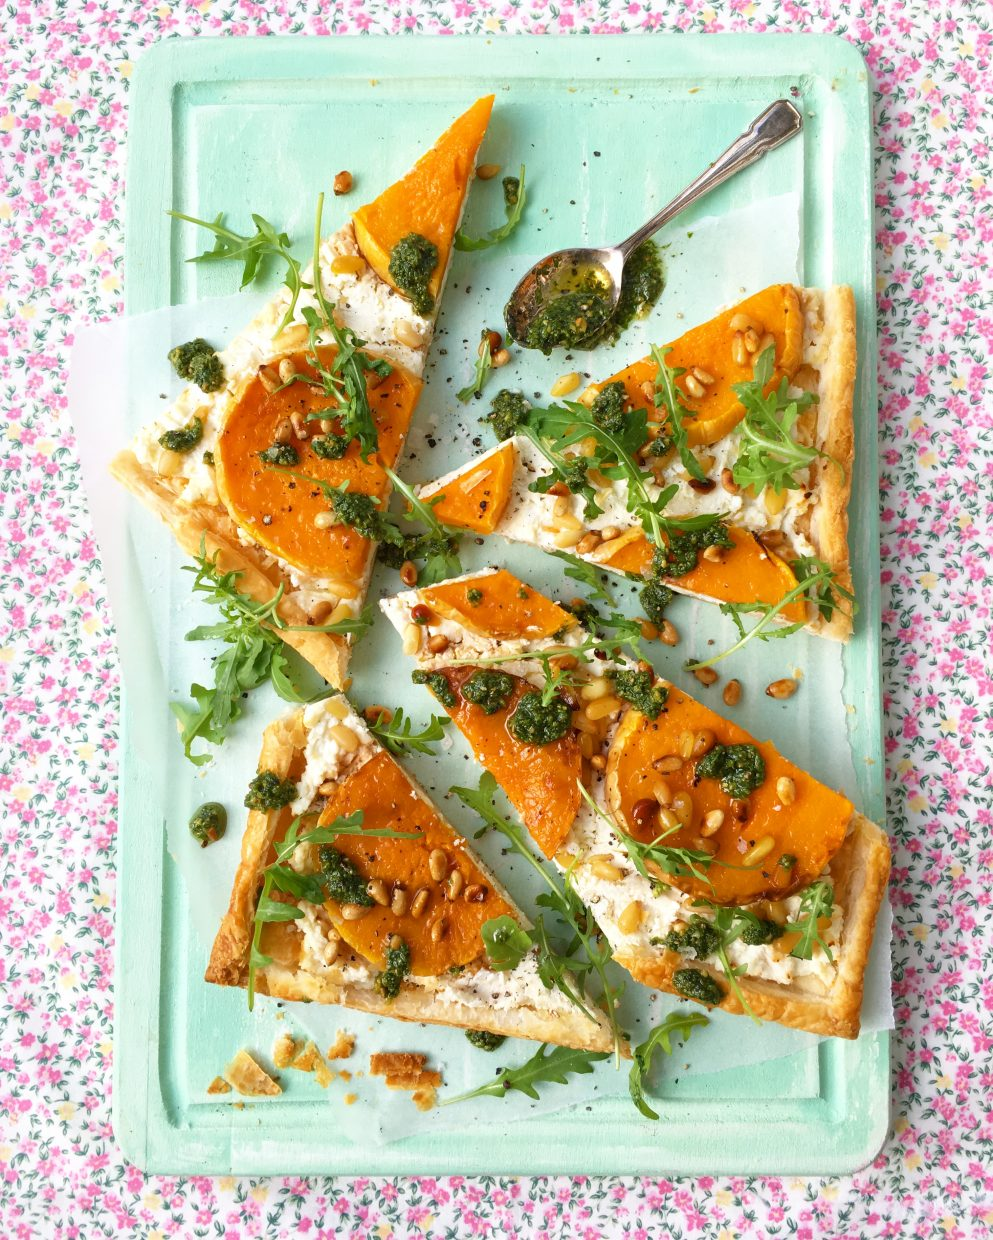 butternut squash tart with feta. sharon hearne-smith